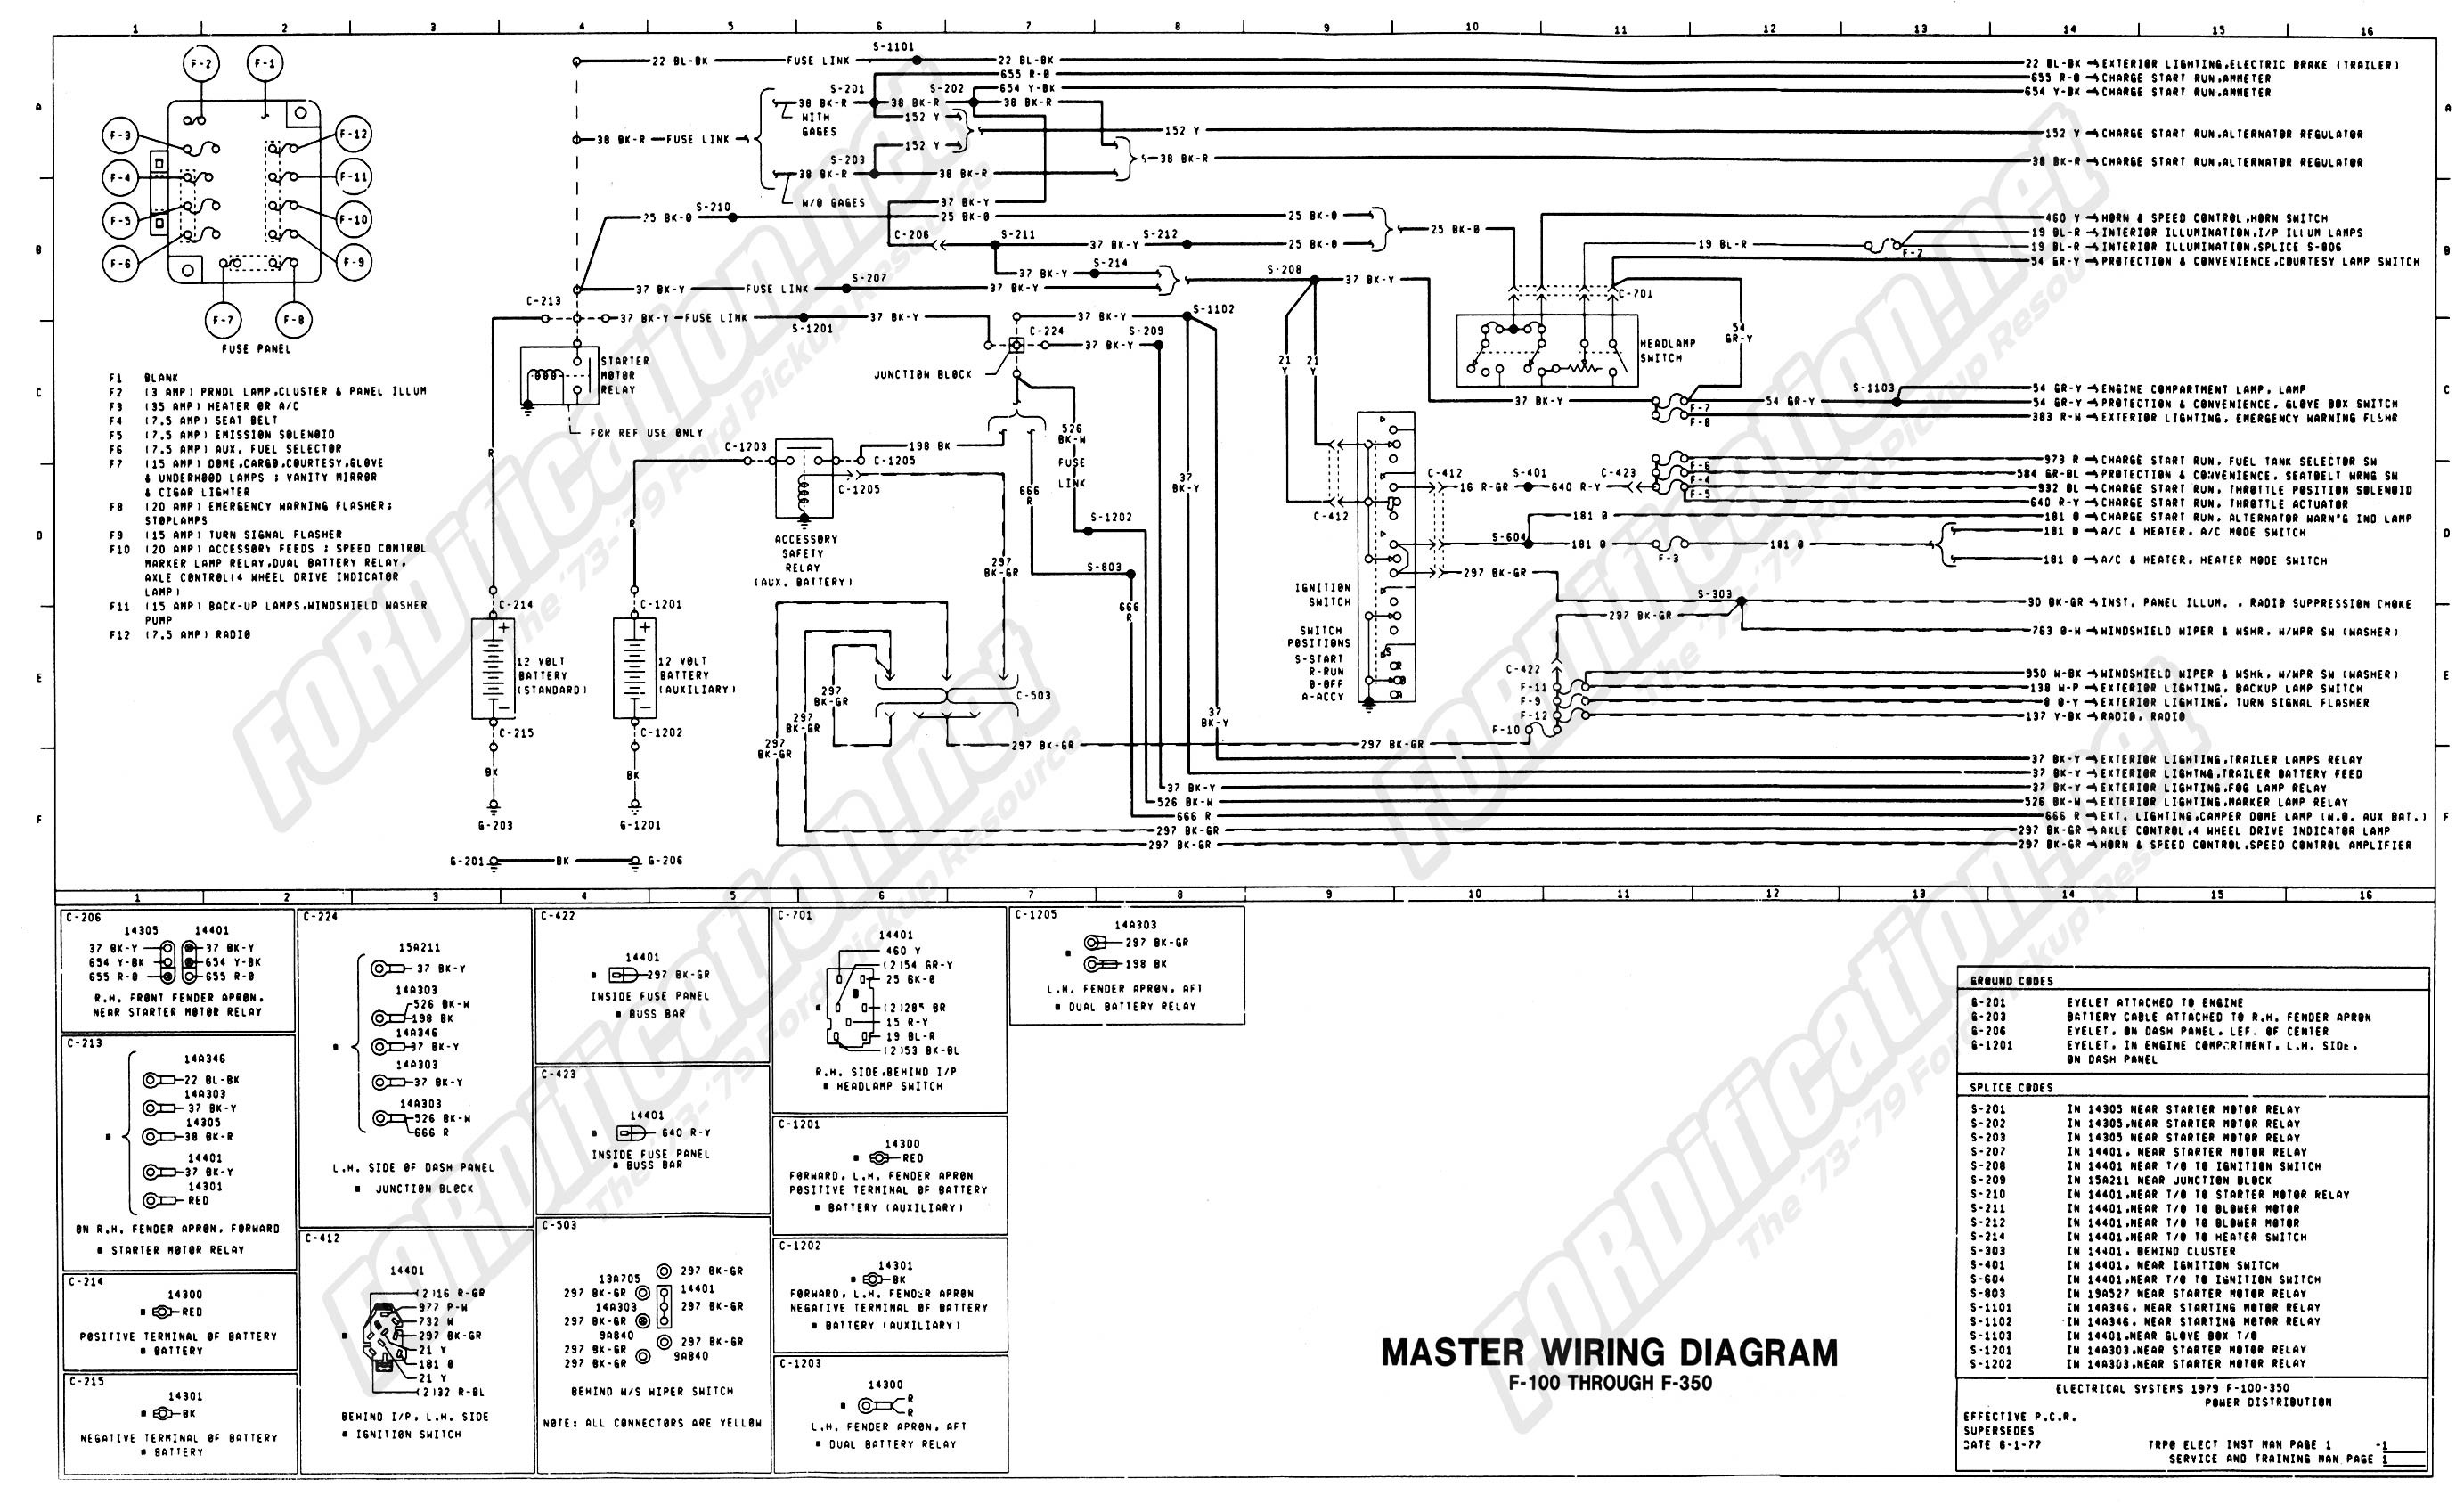 Chevy Spark Tail Light Wiring Diagram Trusted Diagrams